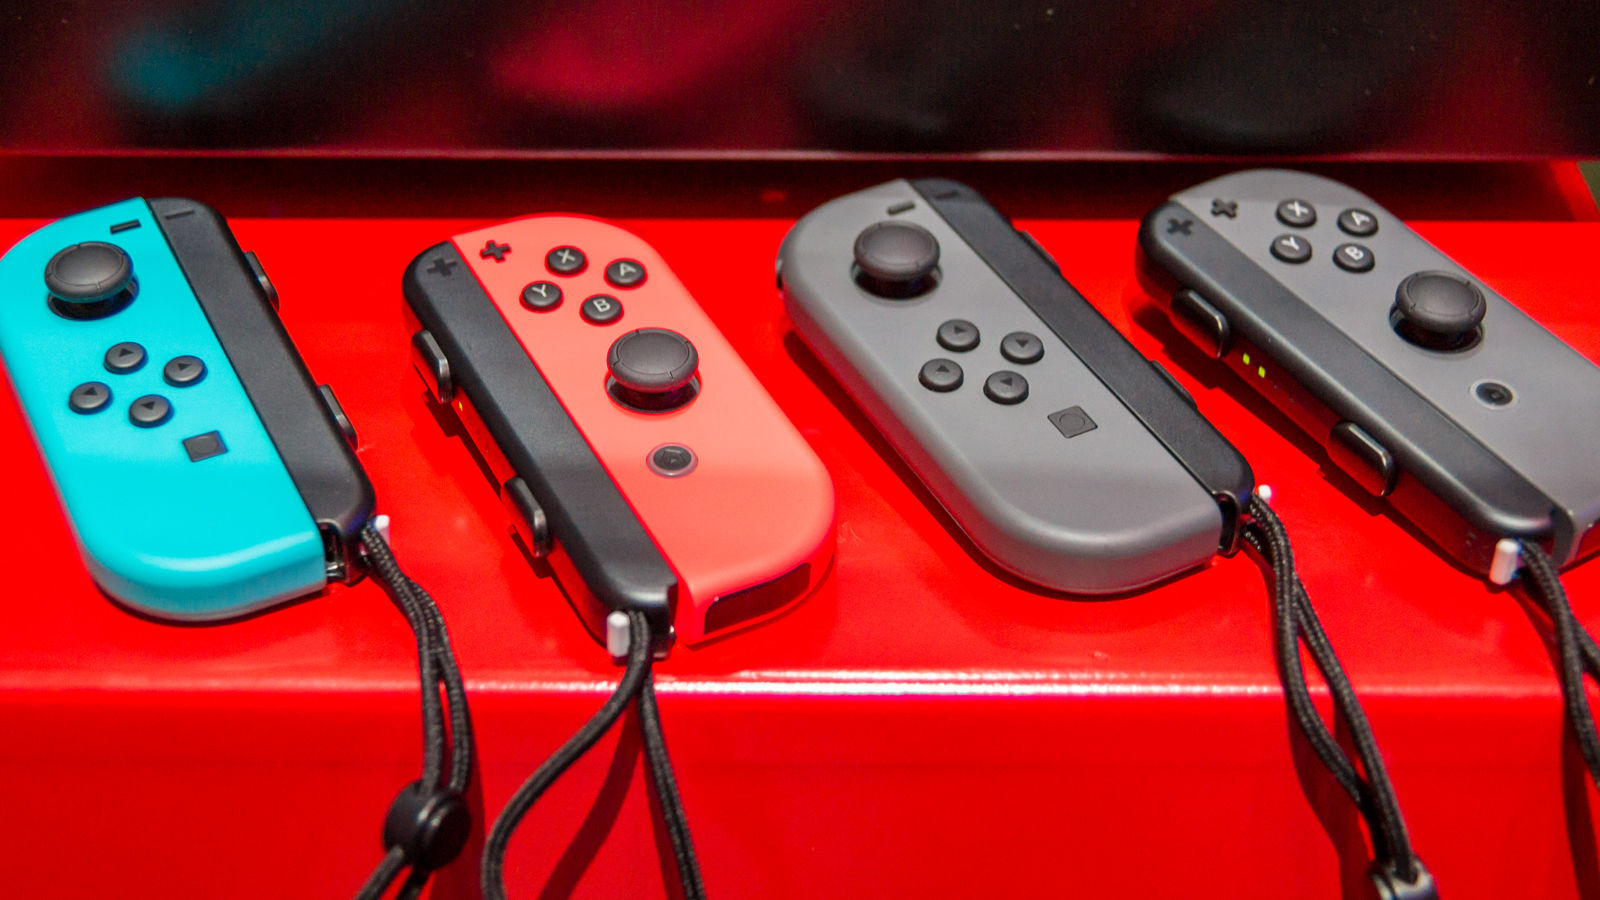 Nintendo Switch: How to Avoid Breaking Your Joy-Con Wrist Straps